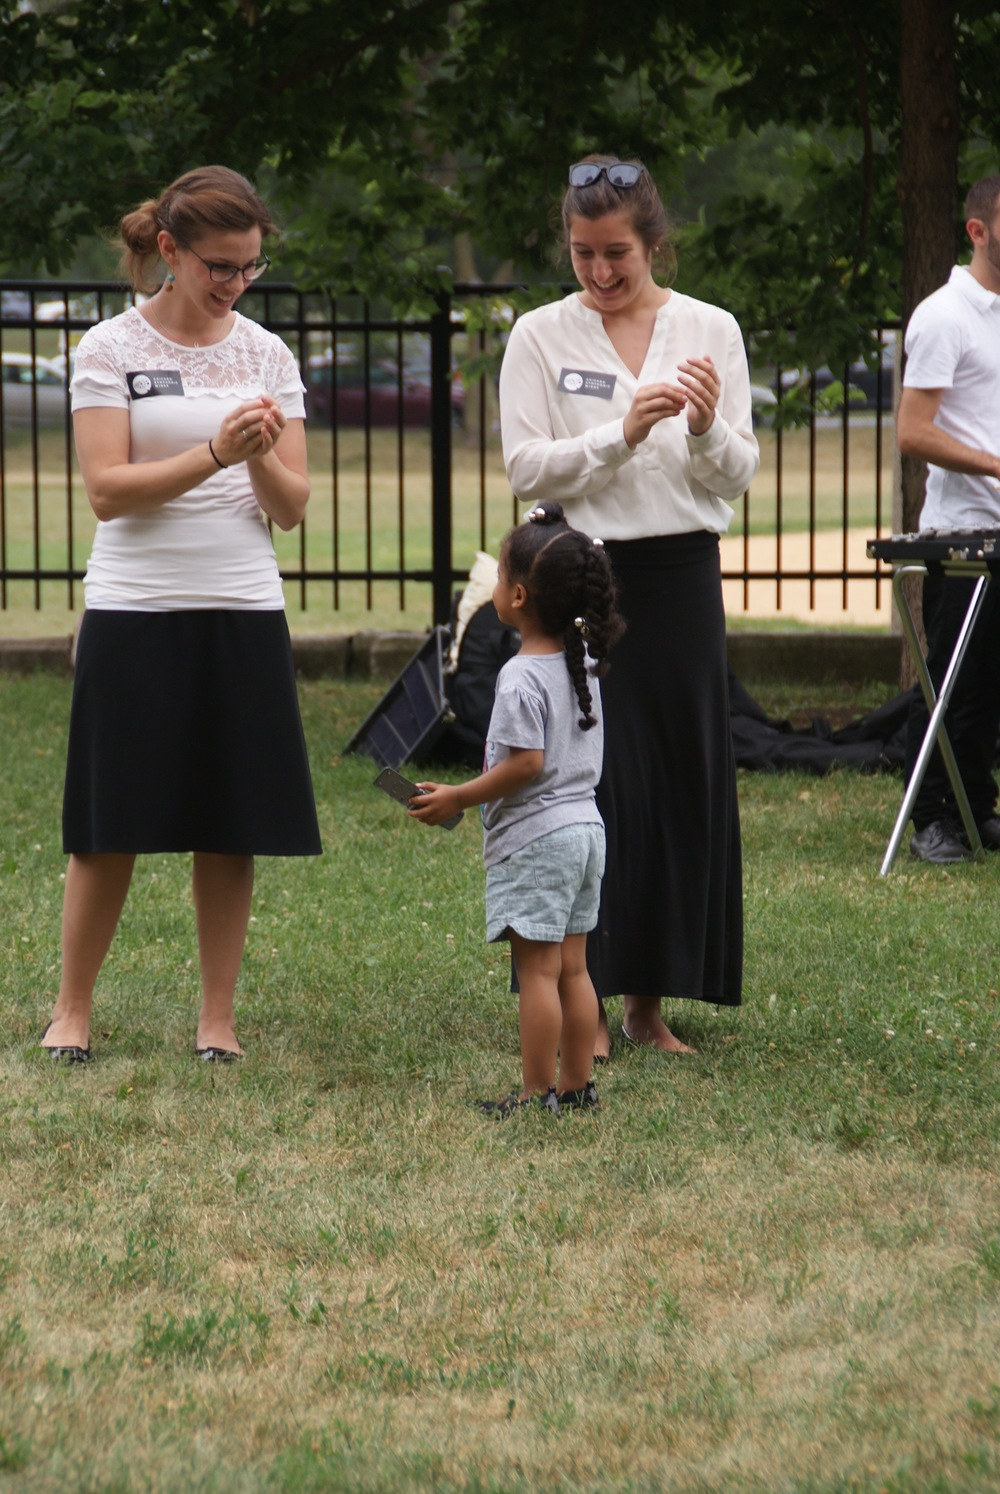 CSW volunteers help guide a young audience member through a hands-on activity as part of CSW's Shakin' It In the Parks as part of the Chicago Park District's Night Out in the Parks series.